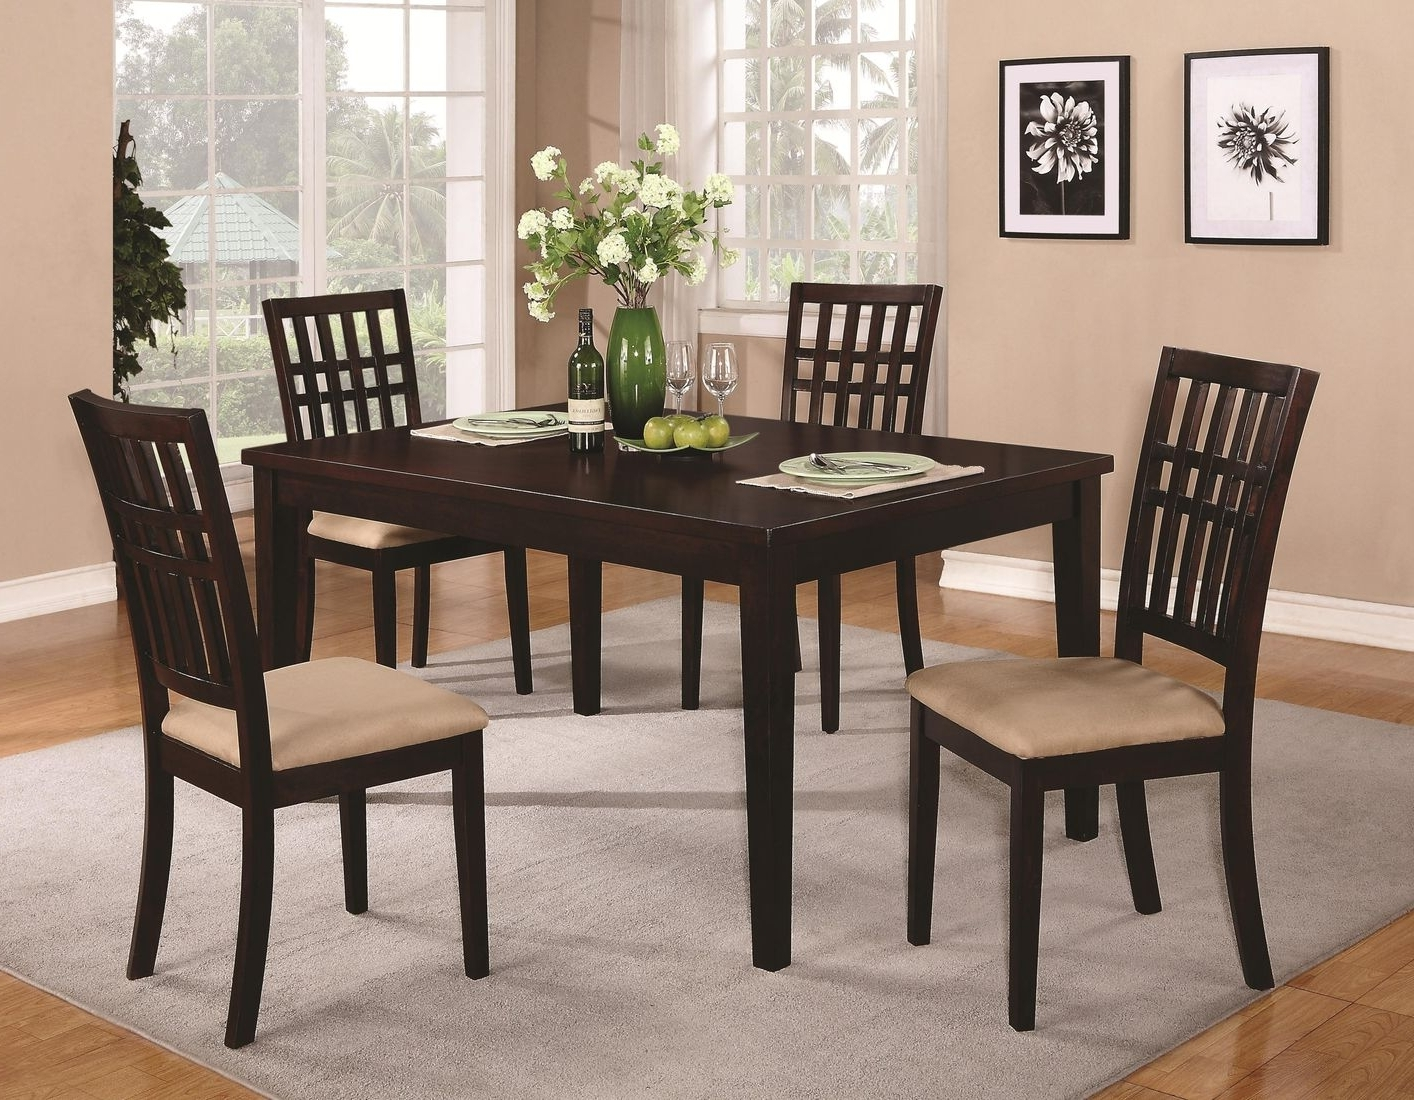 Brandt Dark Cherry Wood Dining Table – Steal A Sofa Furniture Within Well Liked Dining Sofa Chairs (View 7 of 20)